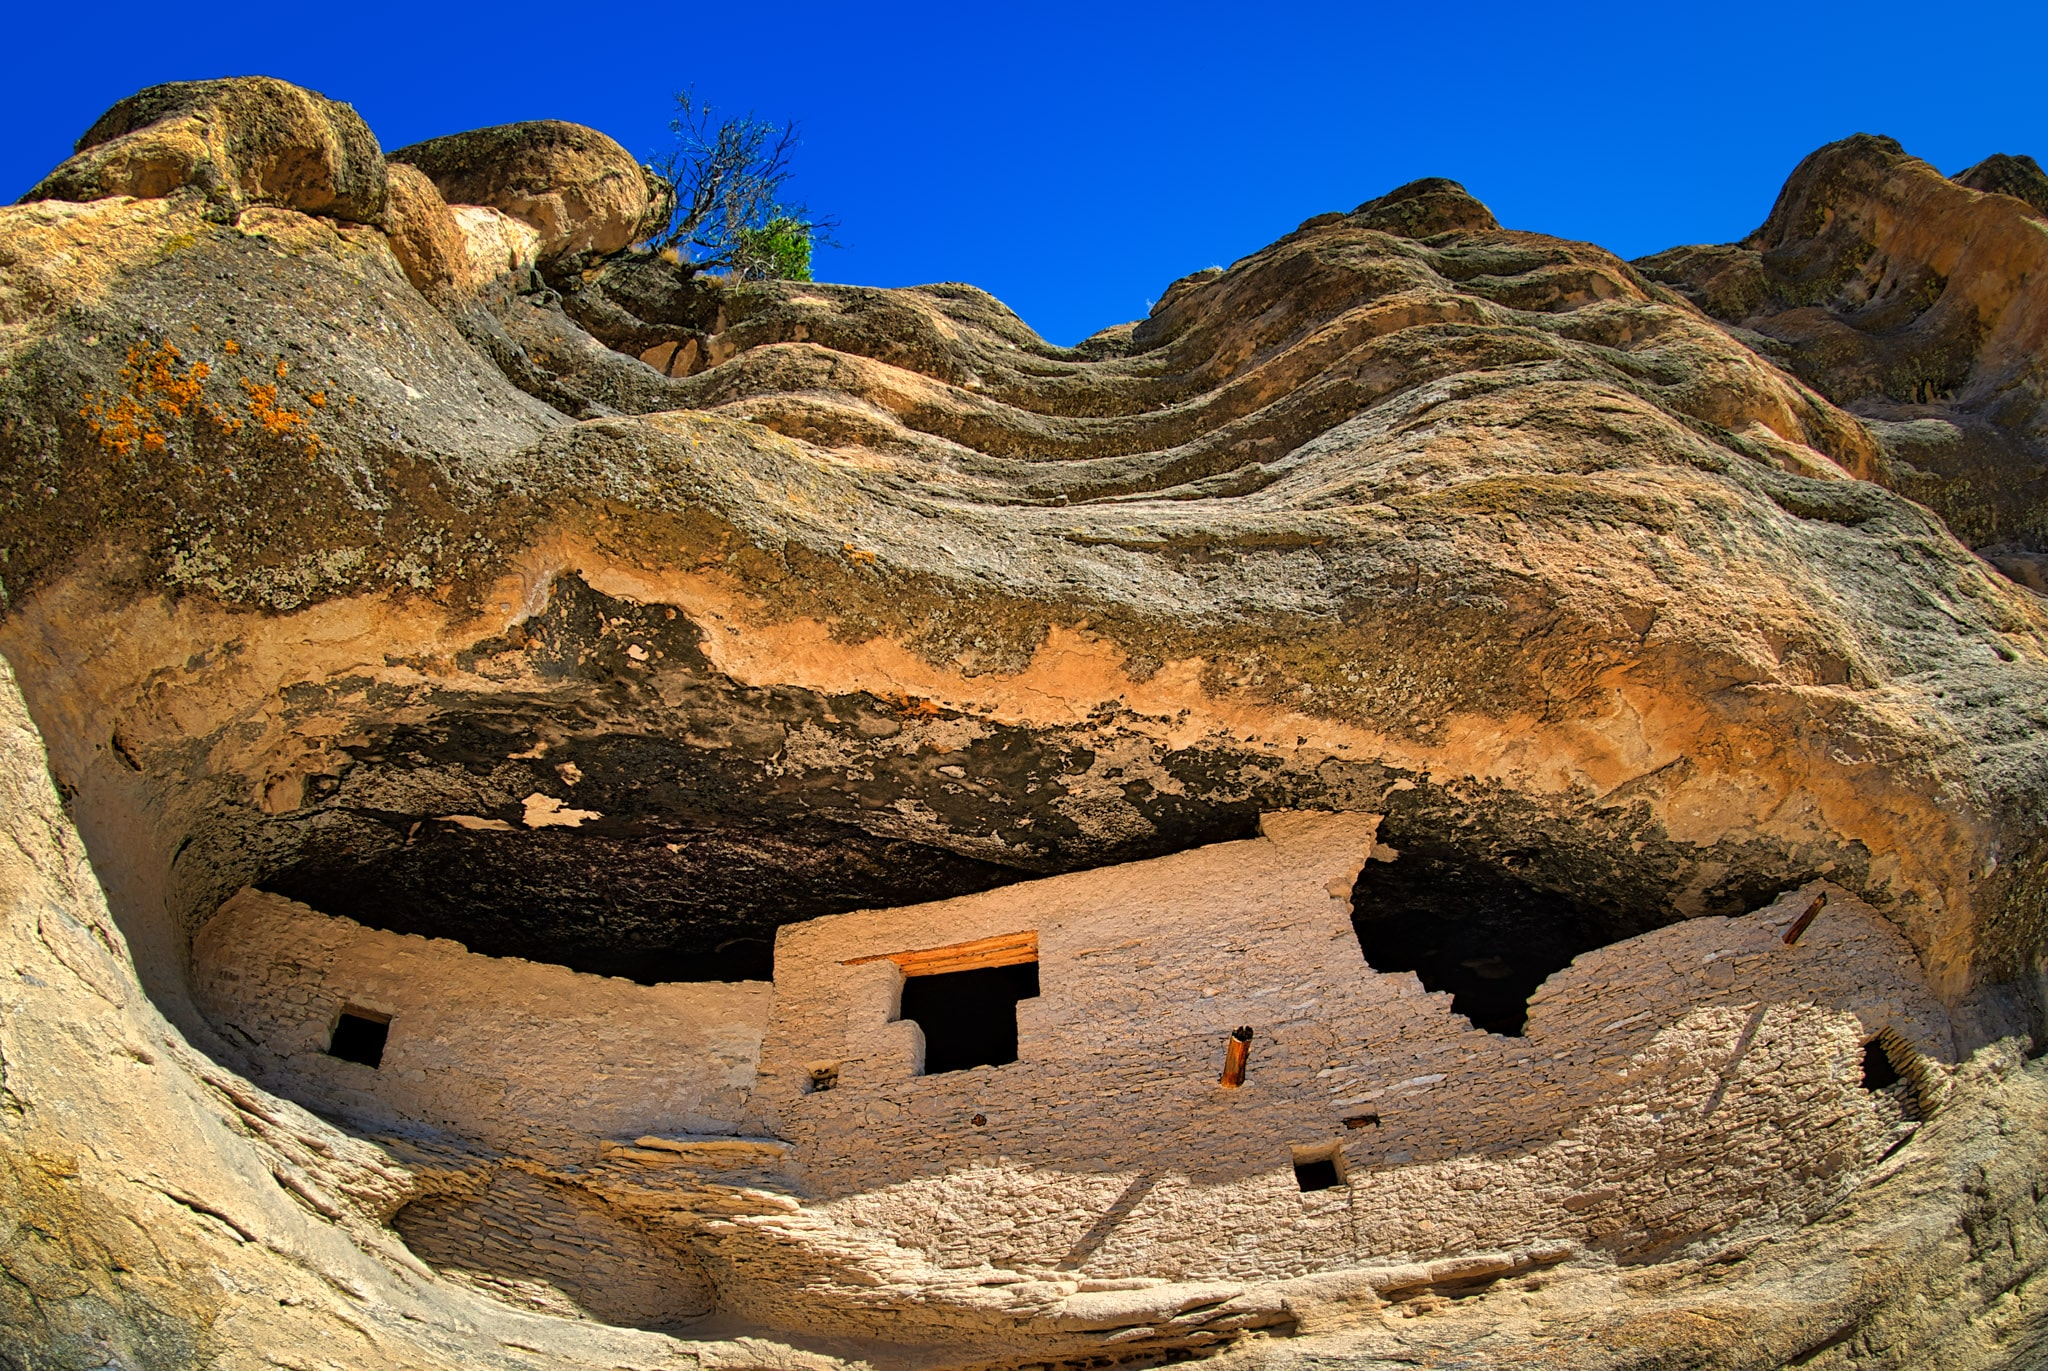 A fish-eye view looking up to the beautiful Gila Cliff Dwellings in Gila Cliff Dwellings National Monument near Silver City, New Mexico.